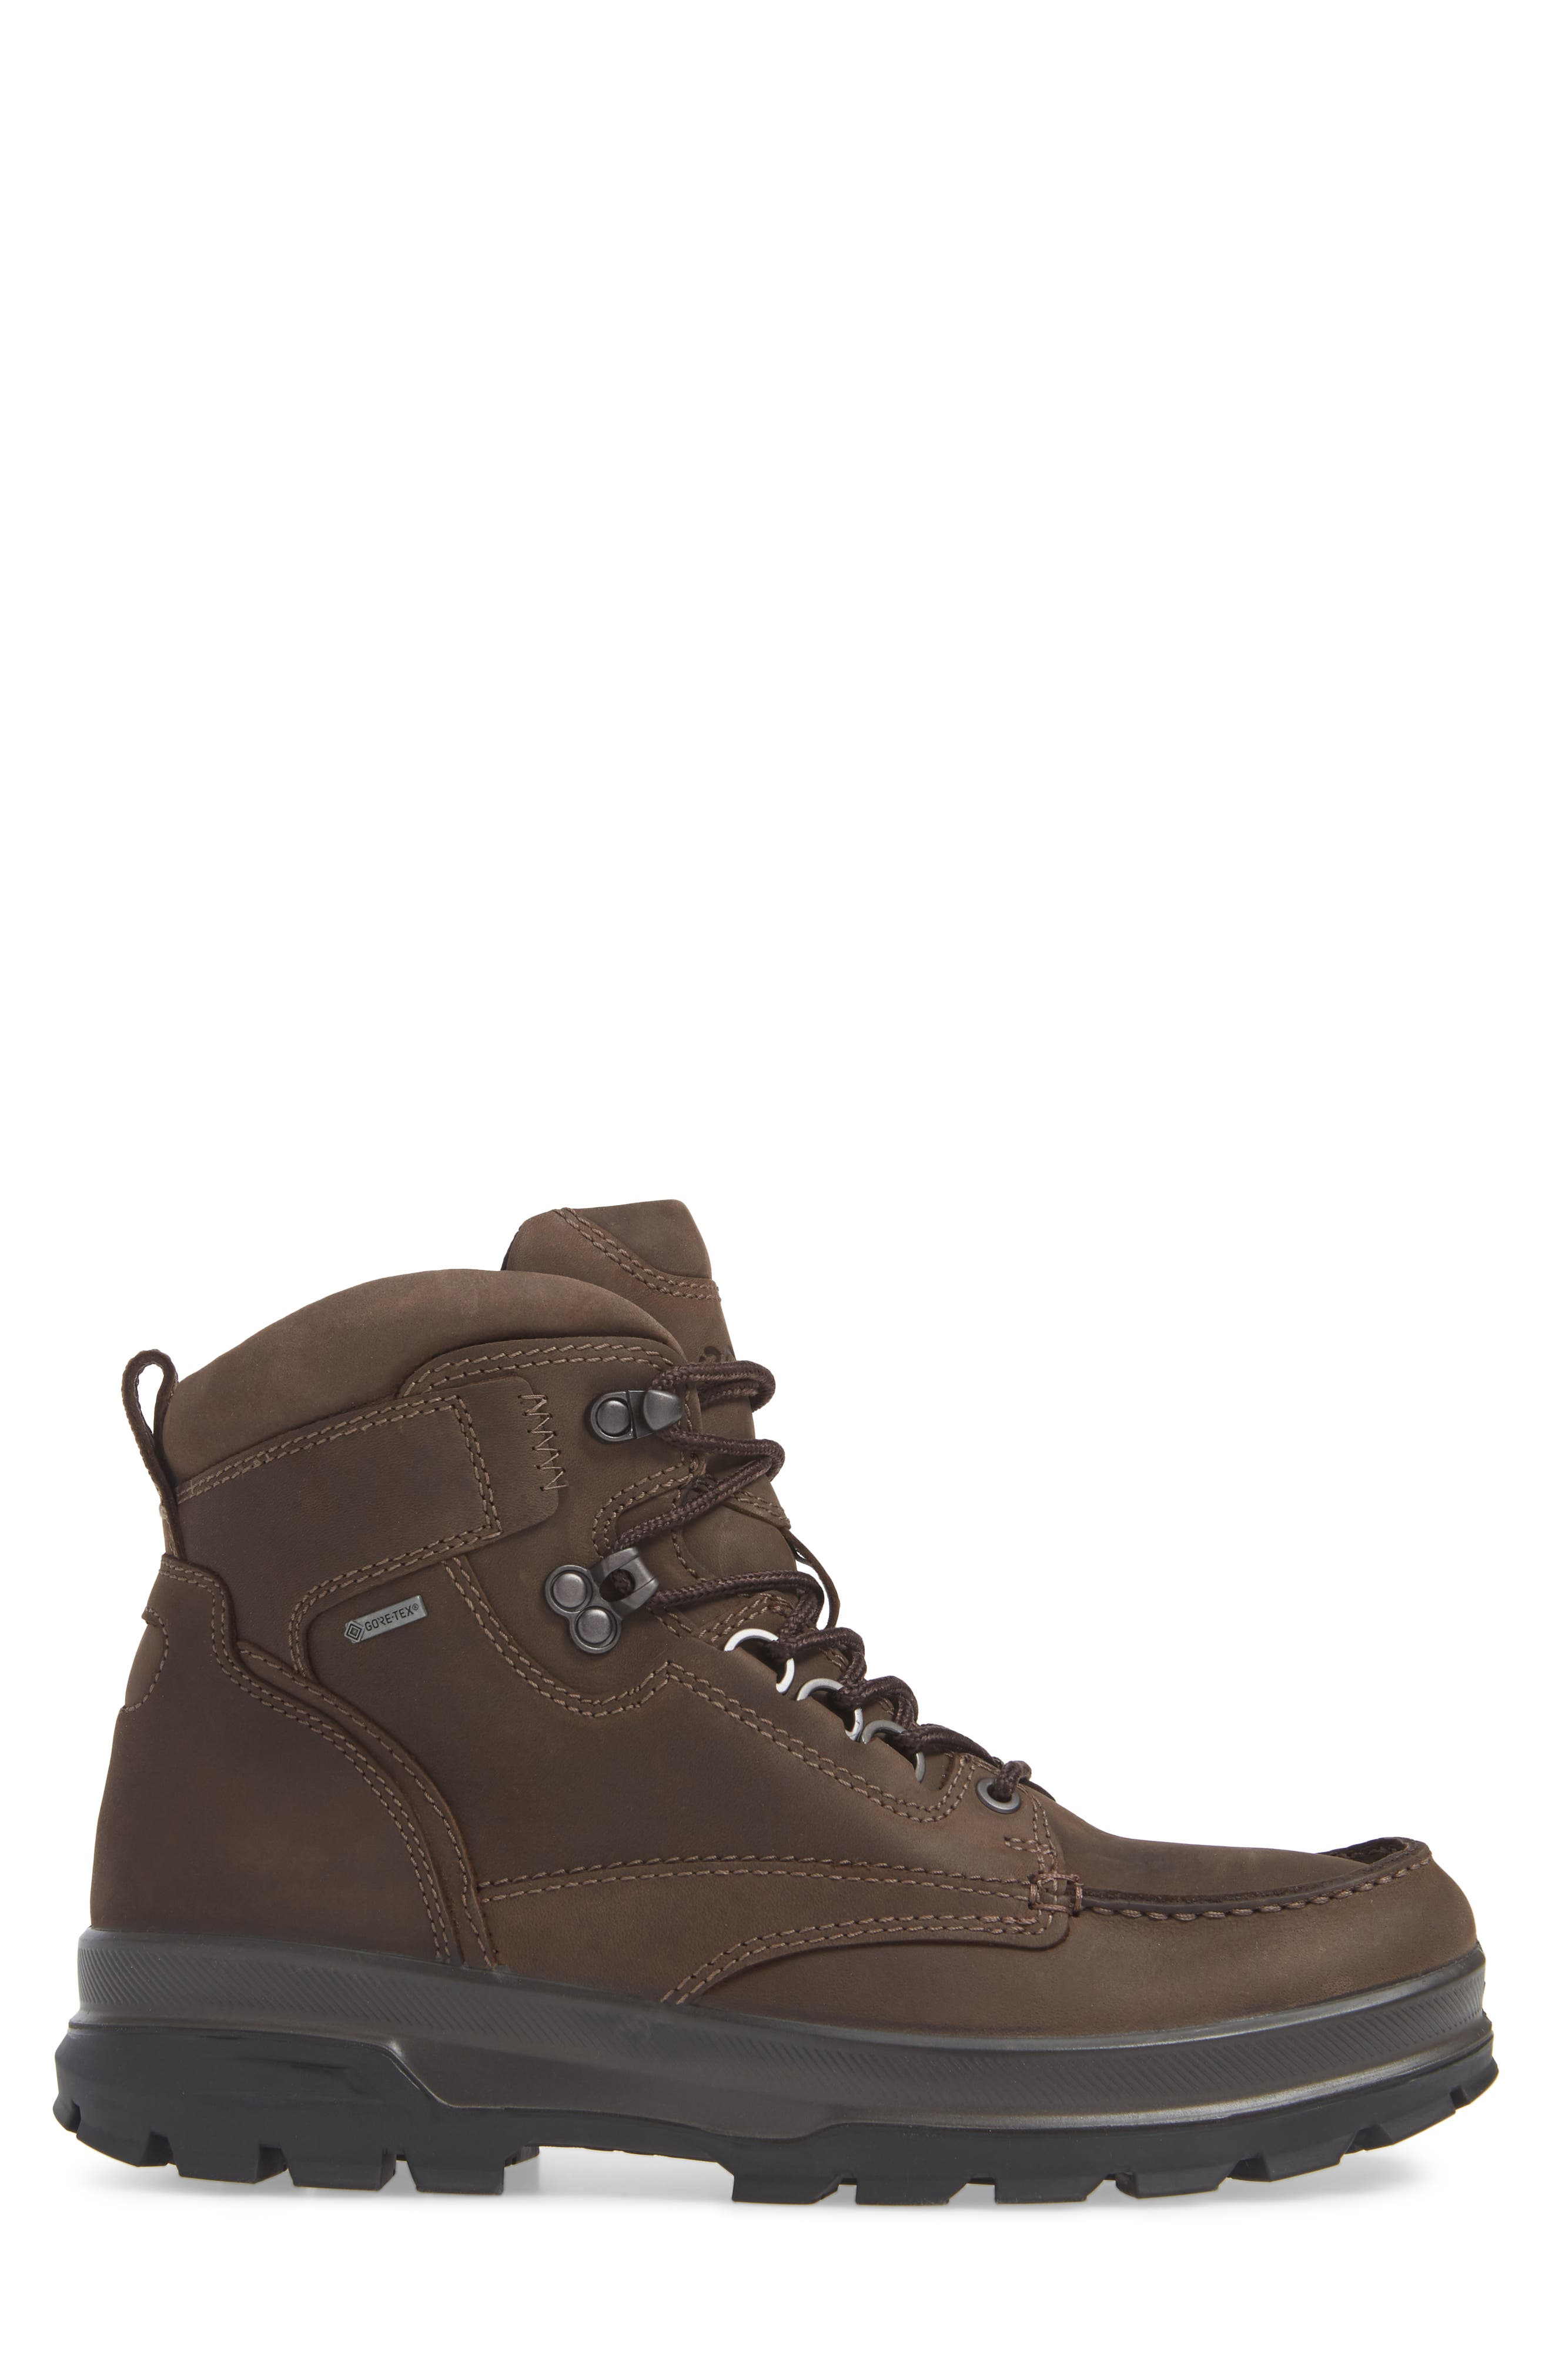 ECCO,                             Rugged Track Gore-Tex<sup>®</sup> Waterproof Boot,                             Alternate thumbnail 3, color,                             217